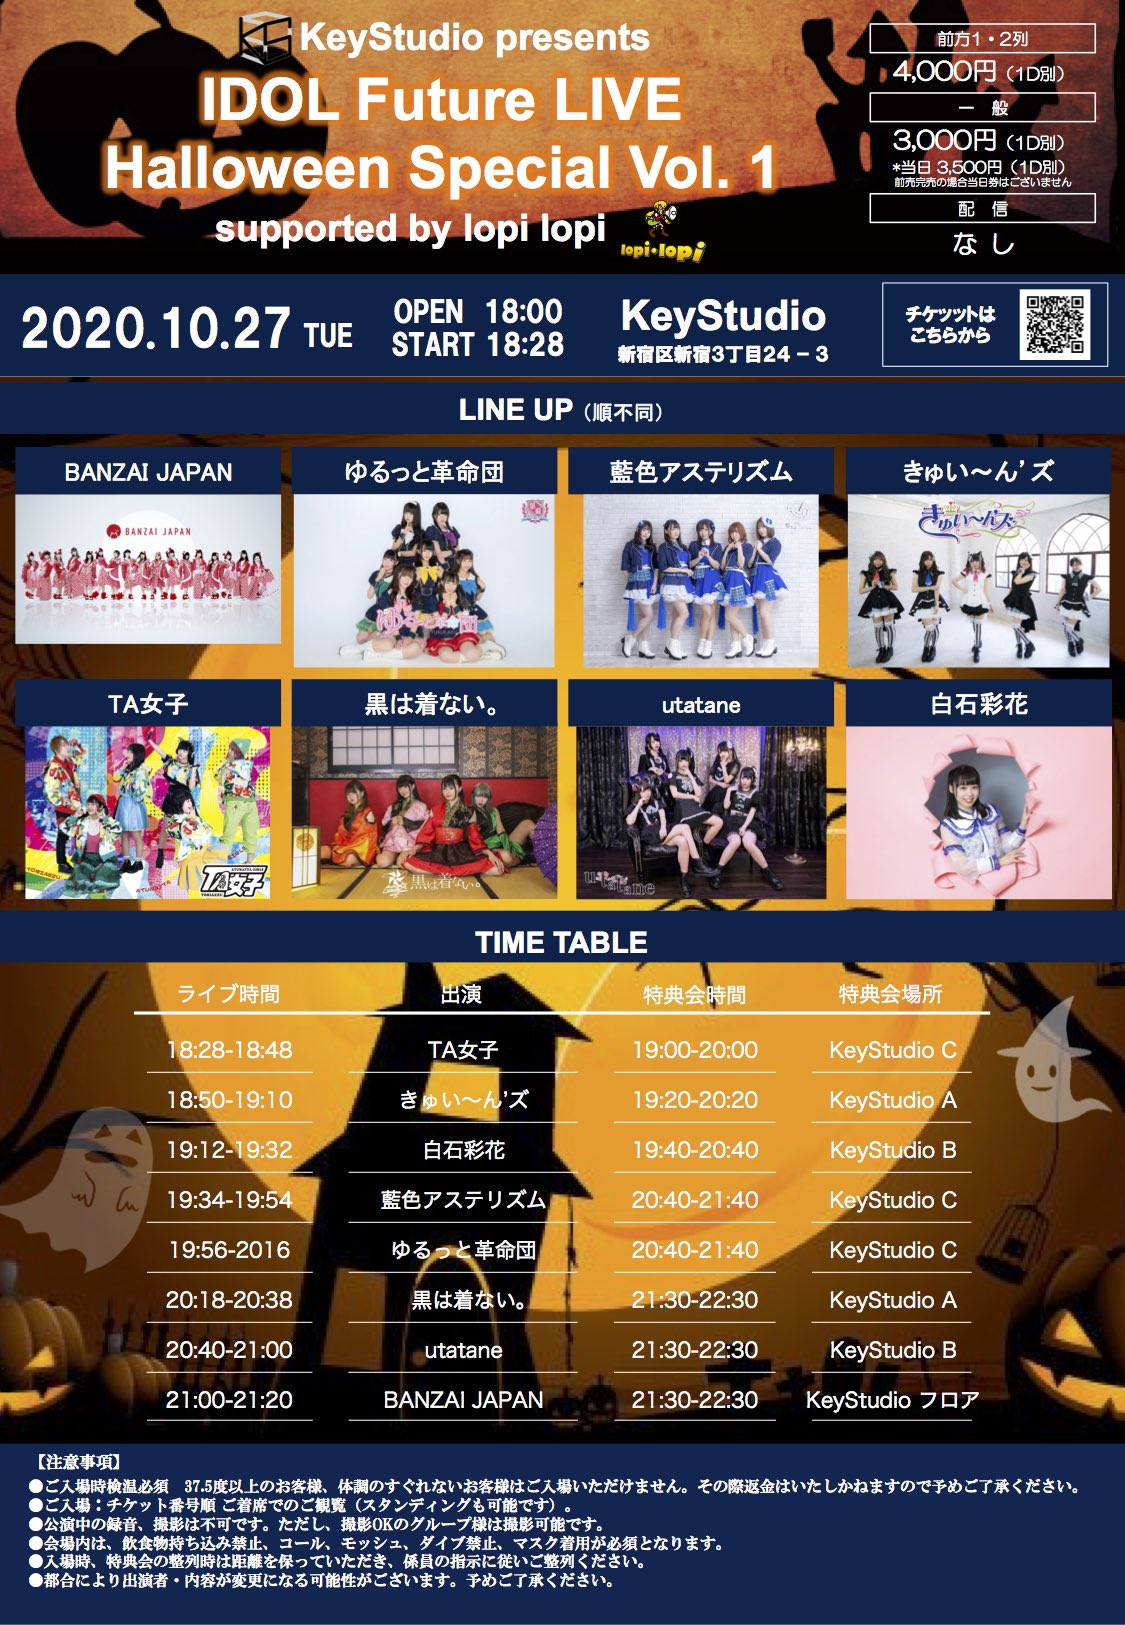 IDOL Future LIVE Halloween Special Vol.1 supported by lopi lopi